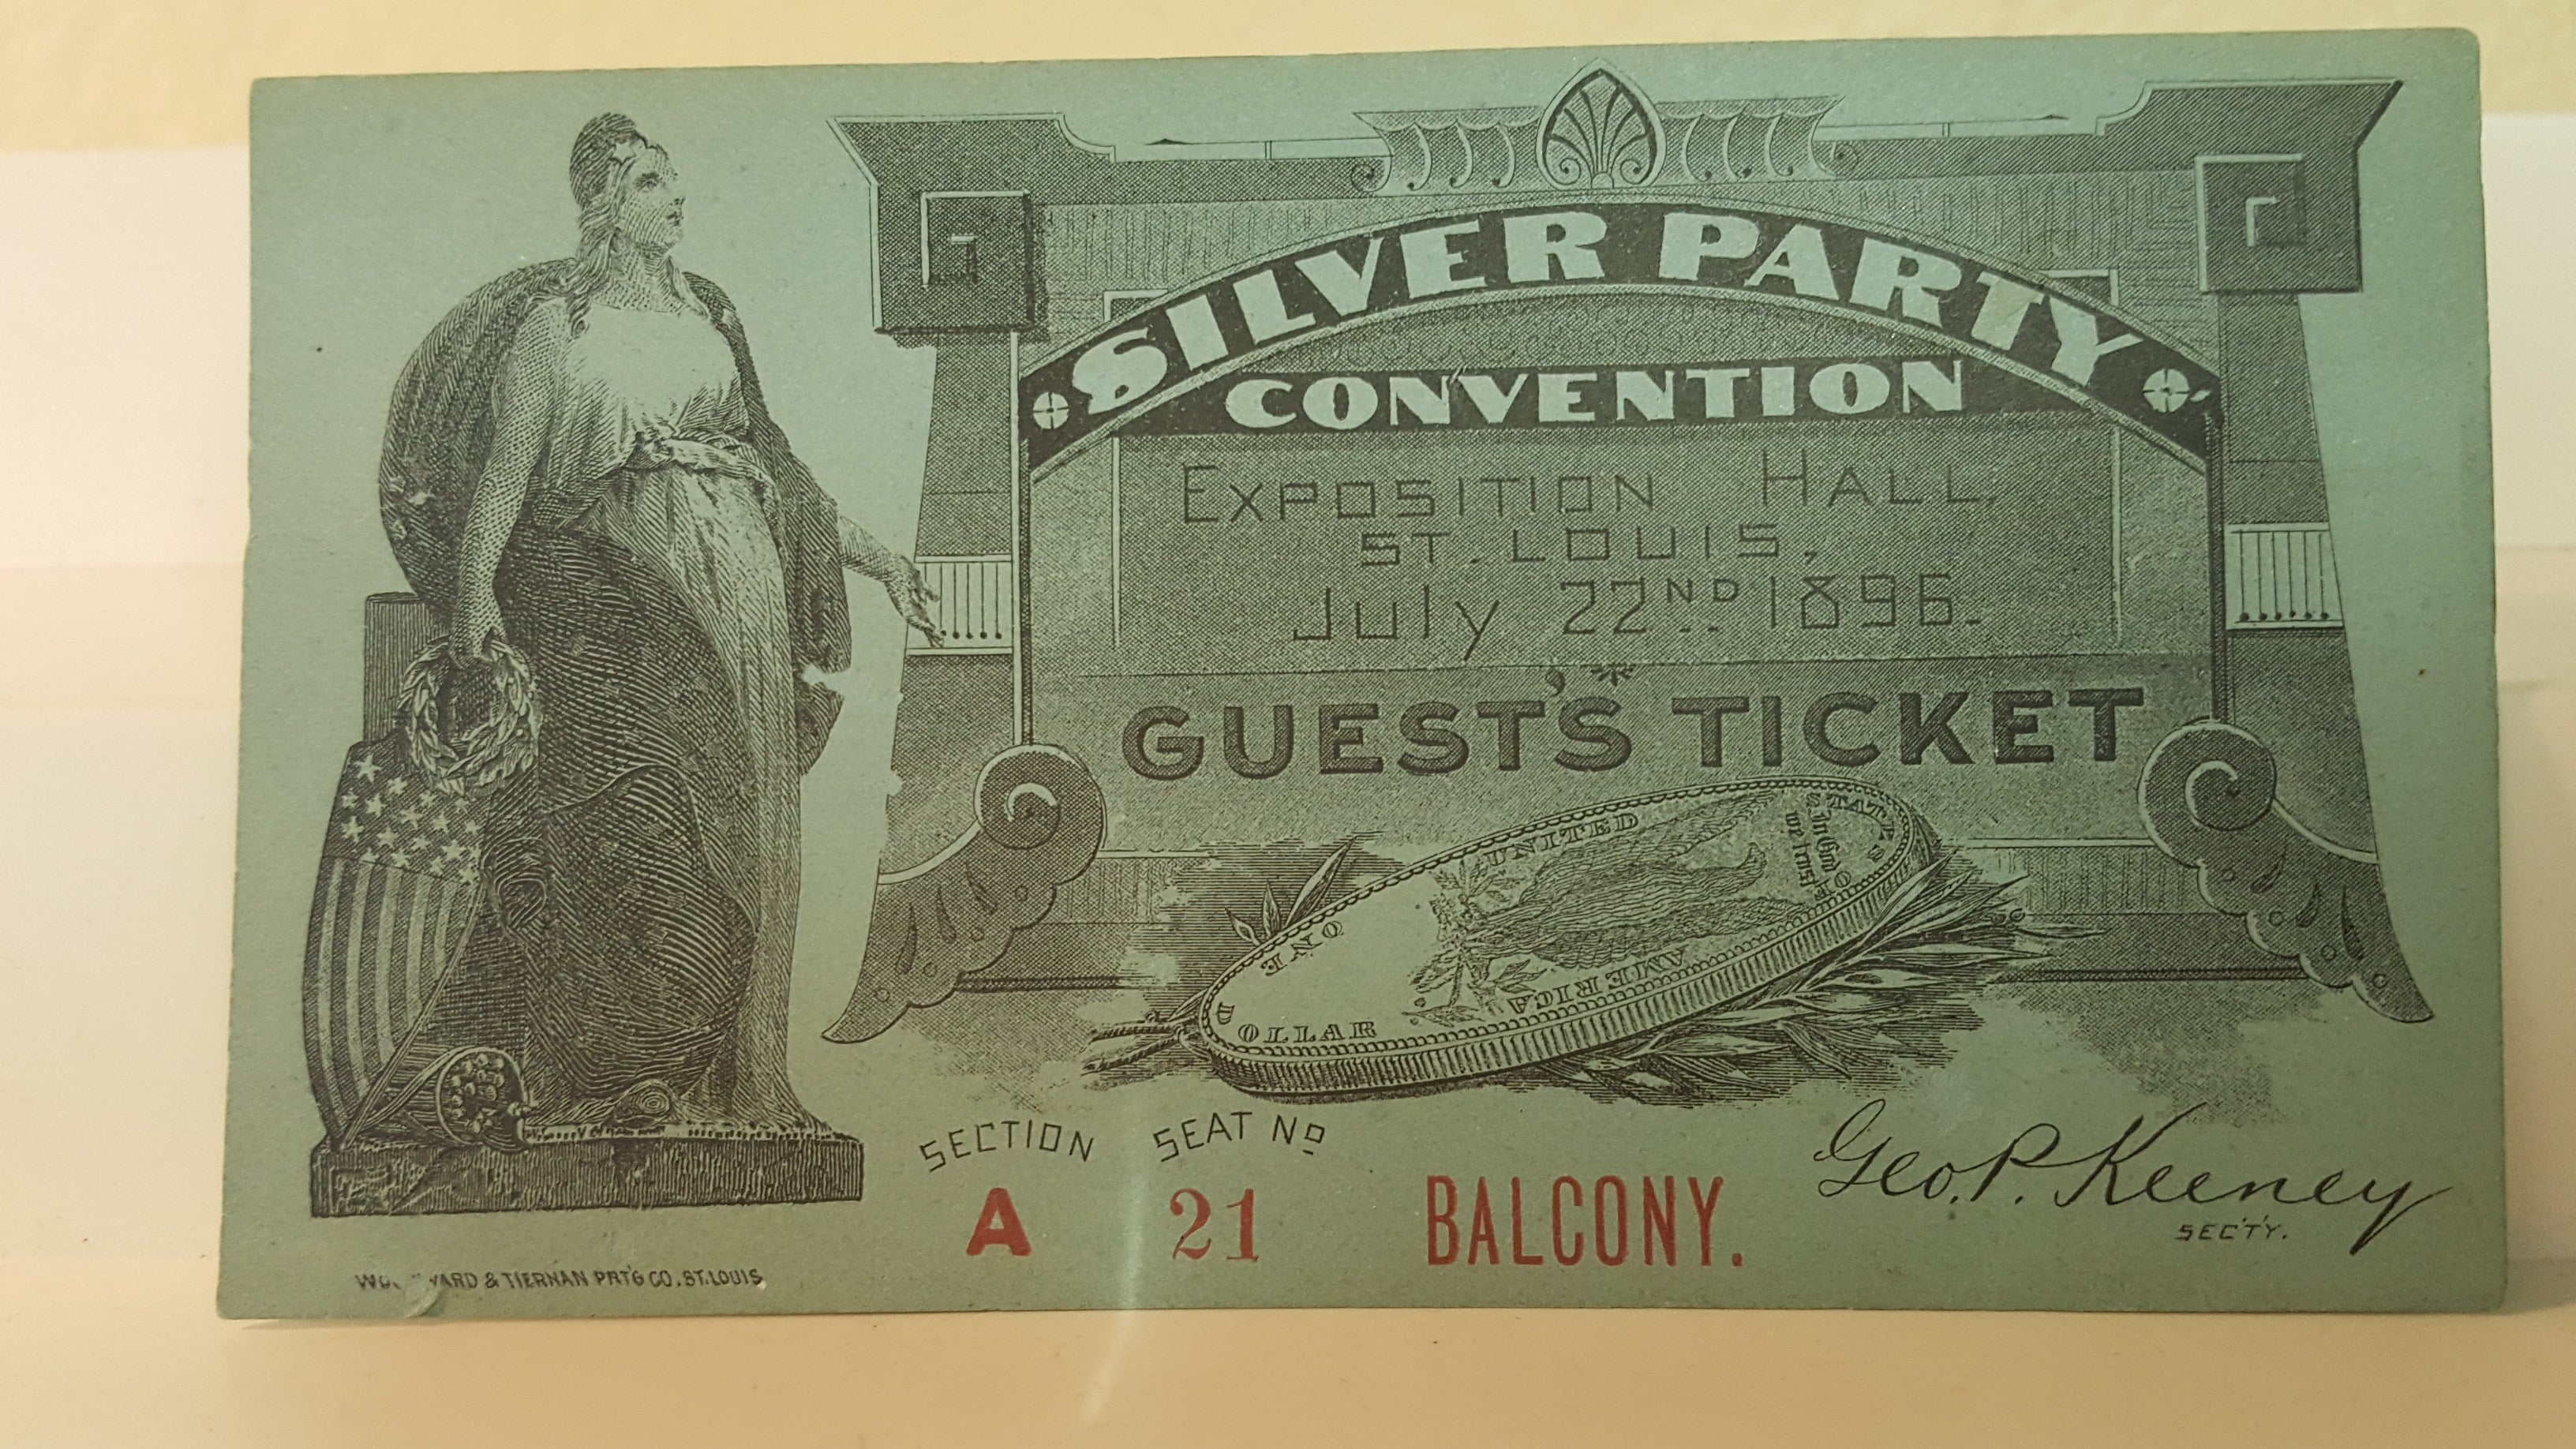 Silver Party July 22nd. 1896 guest ticket – Florida Curios